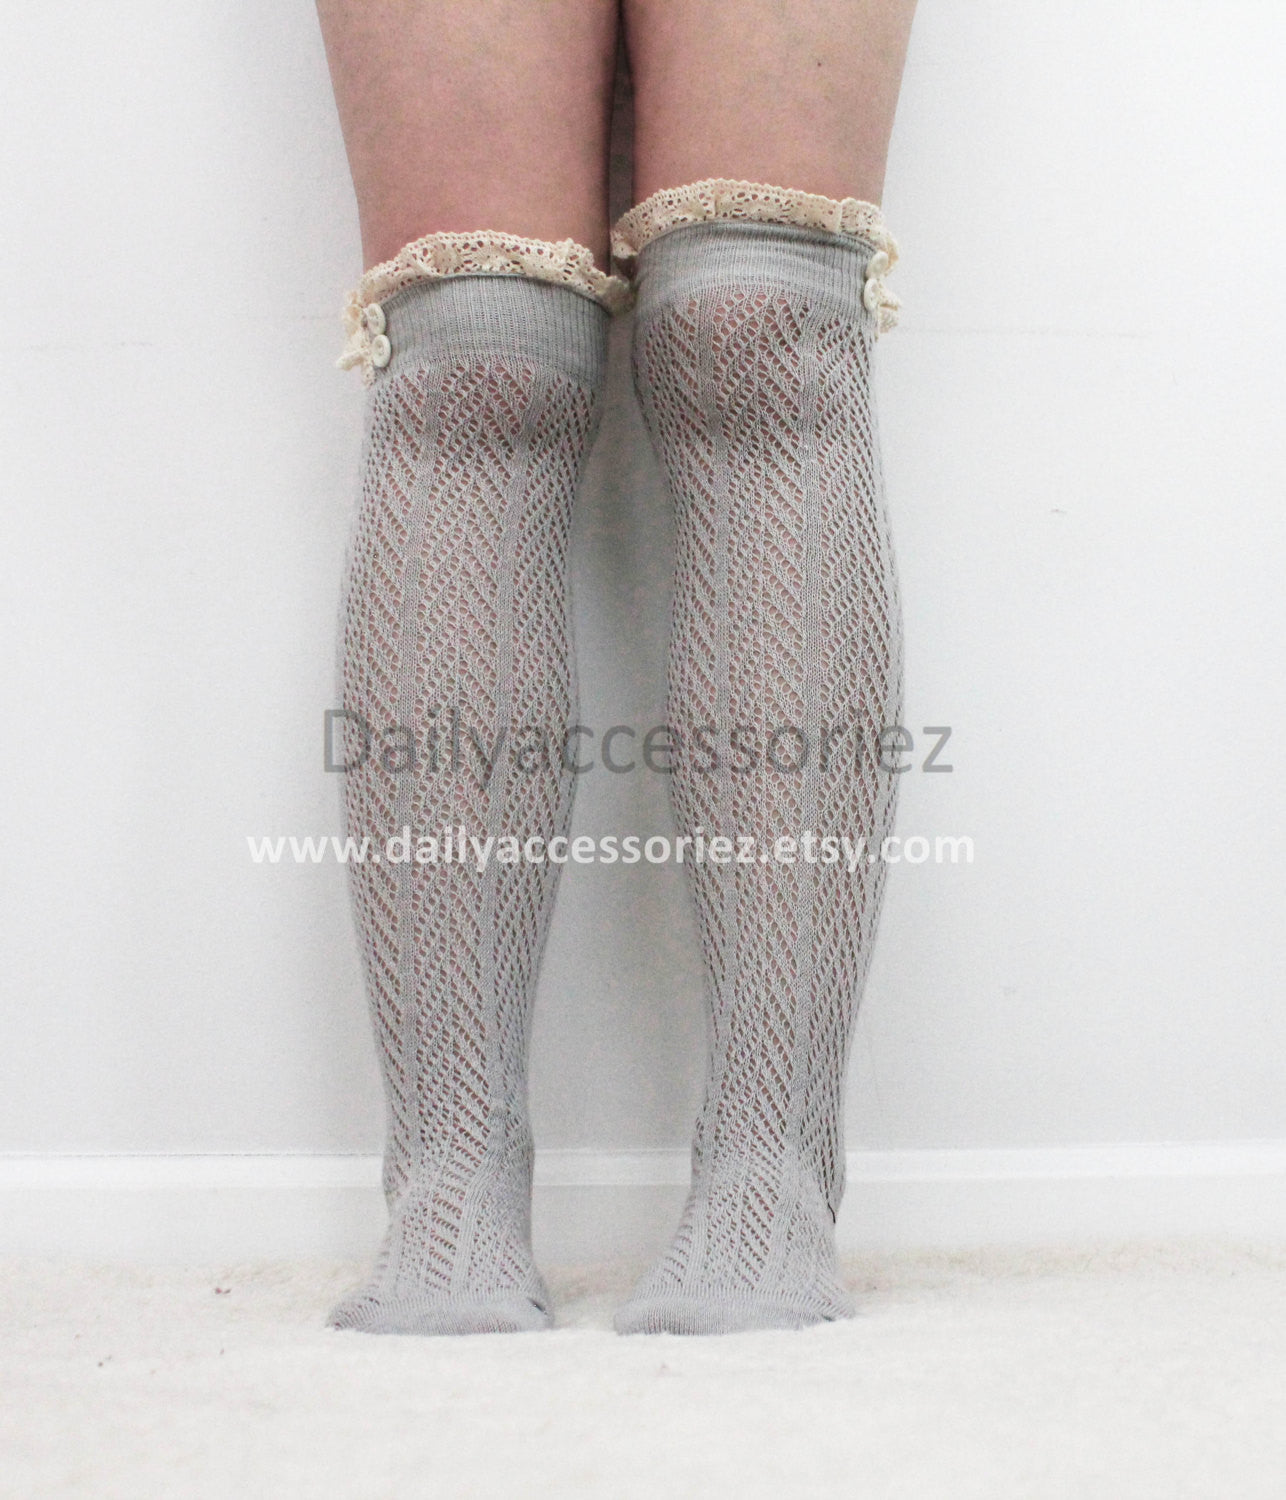 mint lace womens leg warmers - Bean Concept - Etsy